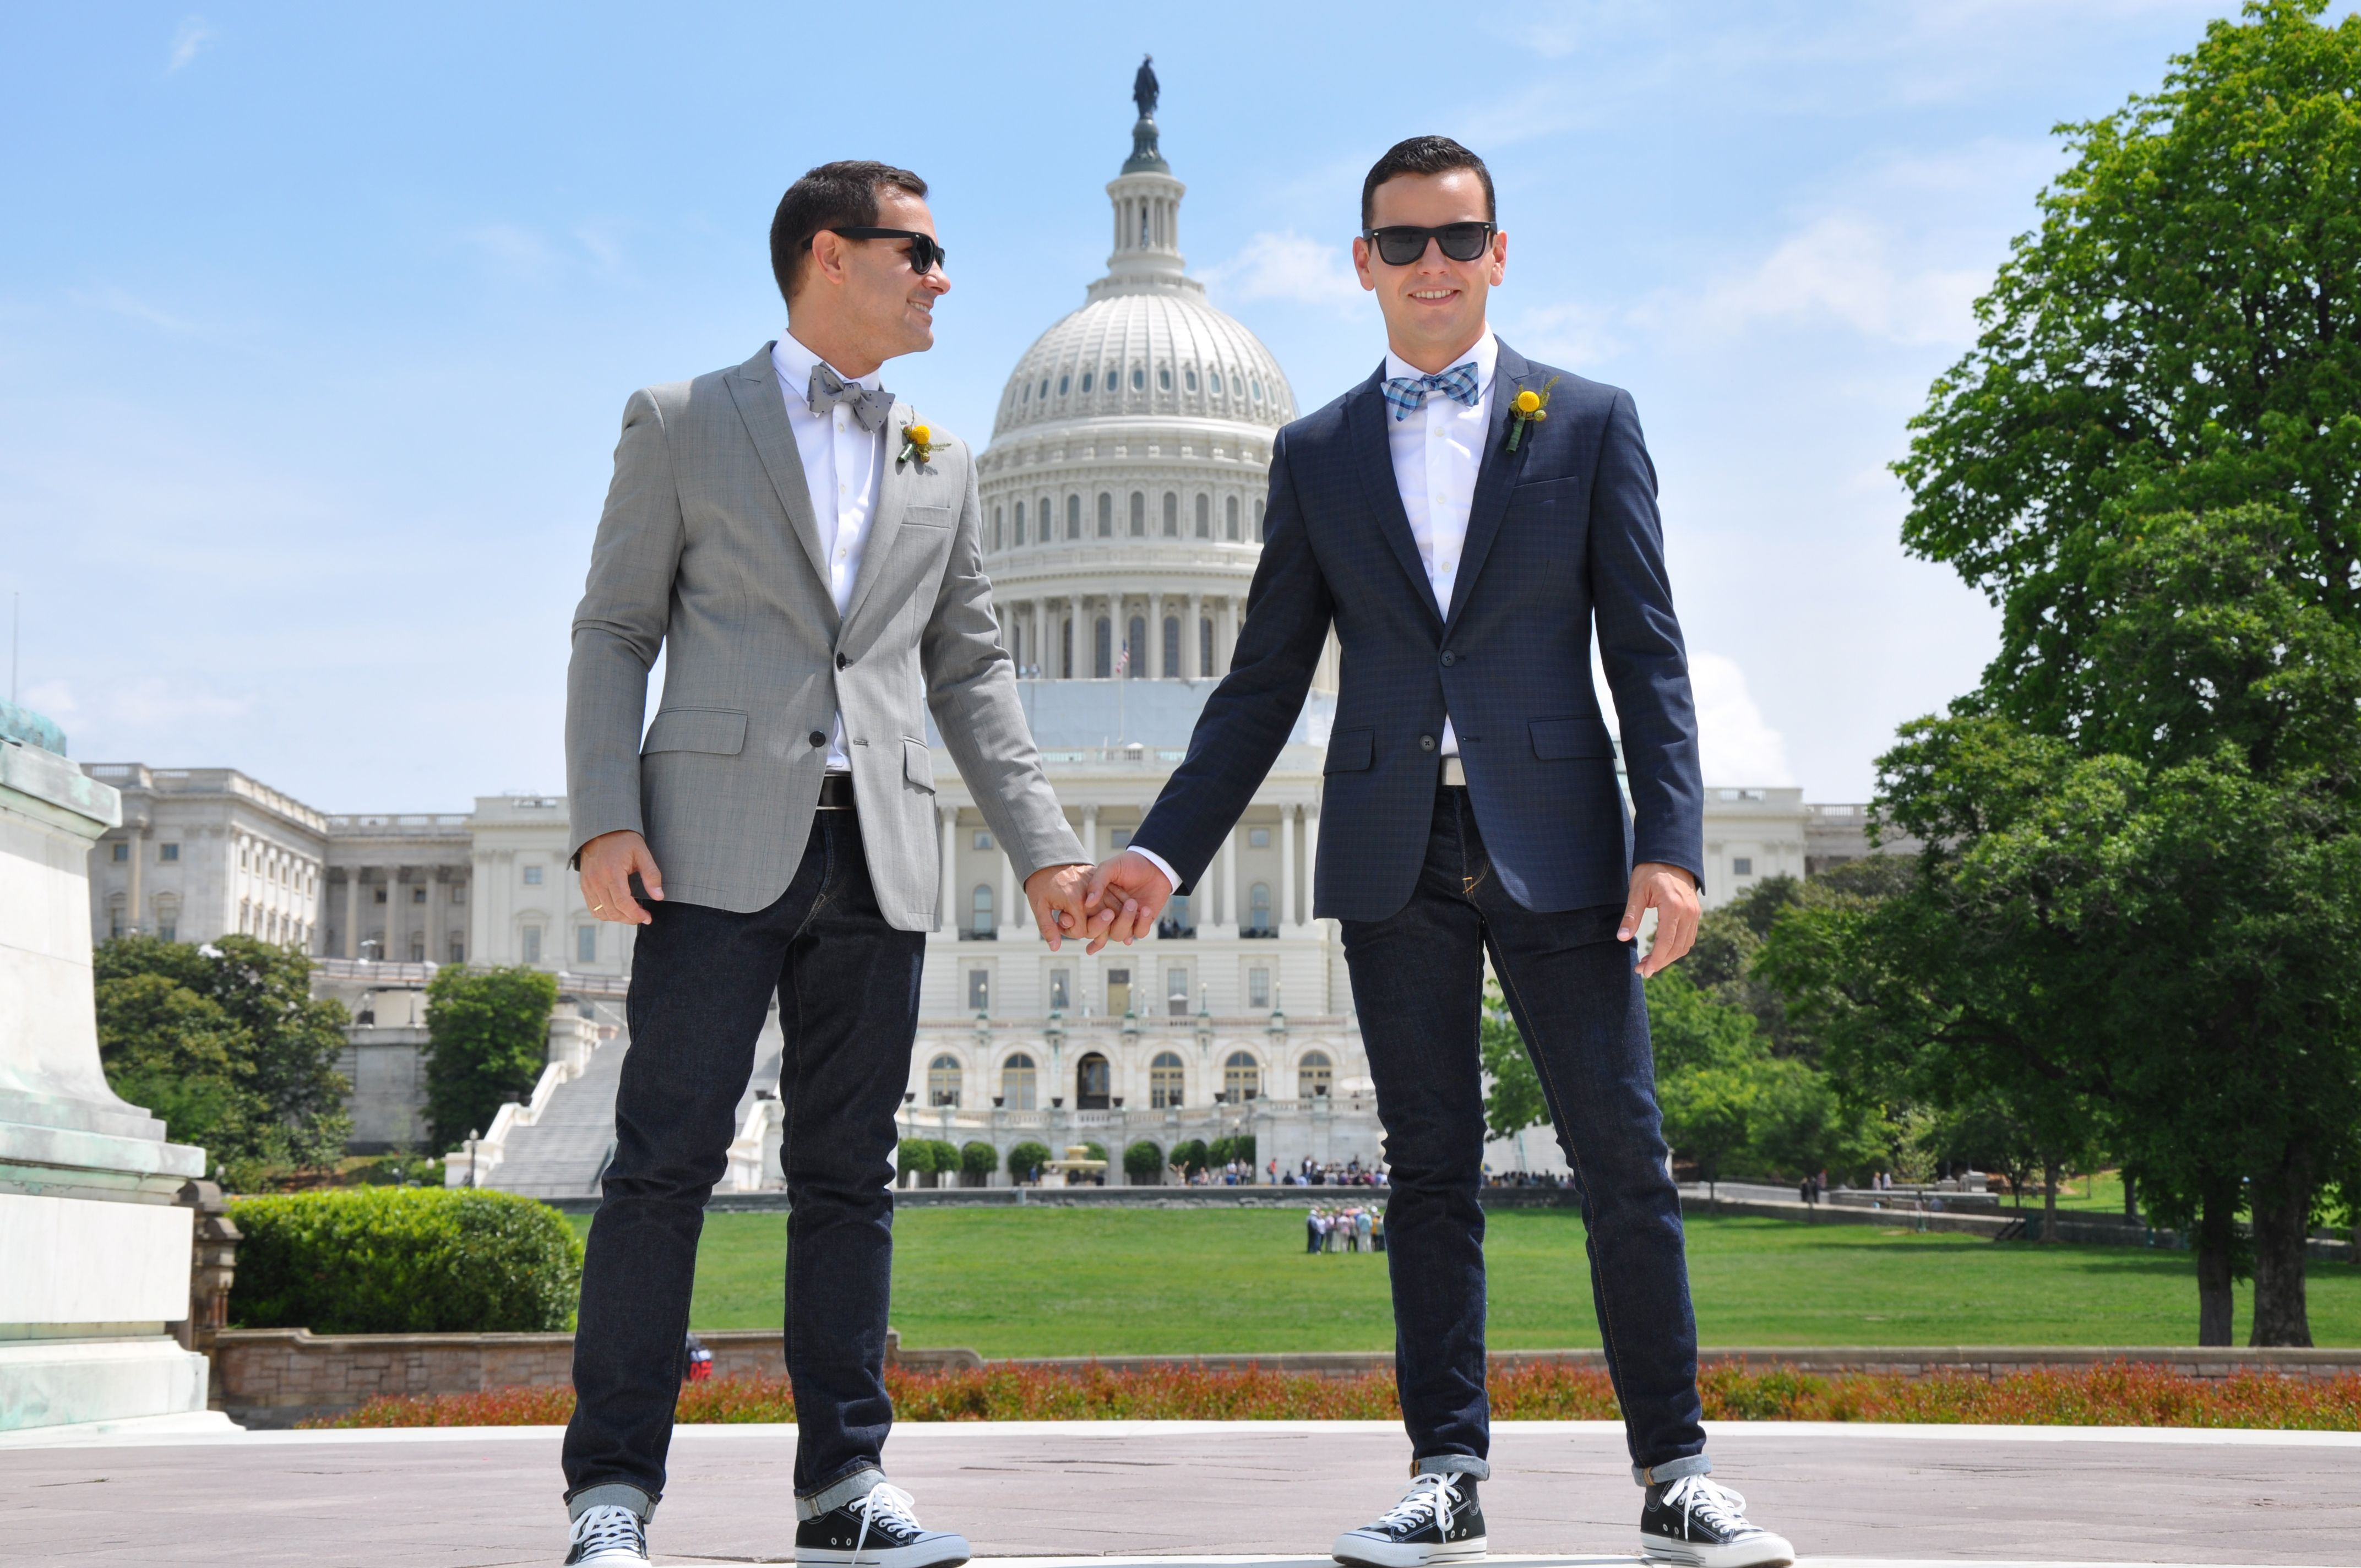 MARRIED GAY MARRIAGE WEDDINGS Pinterest